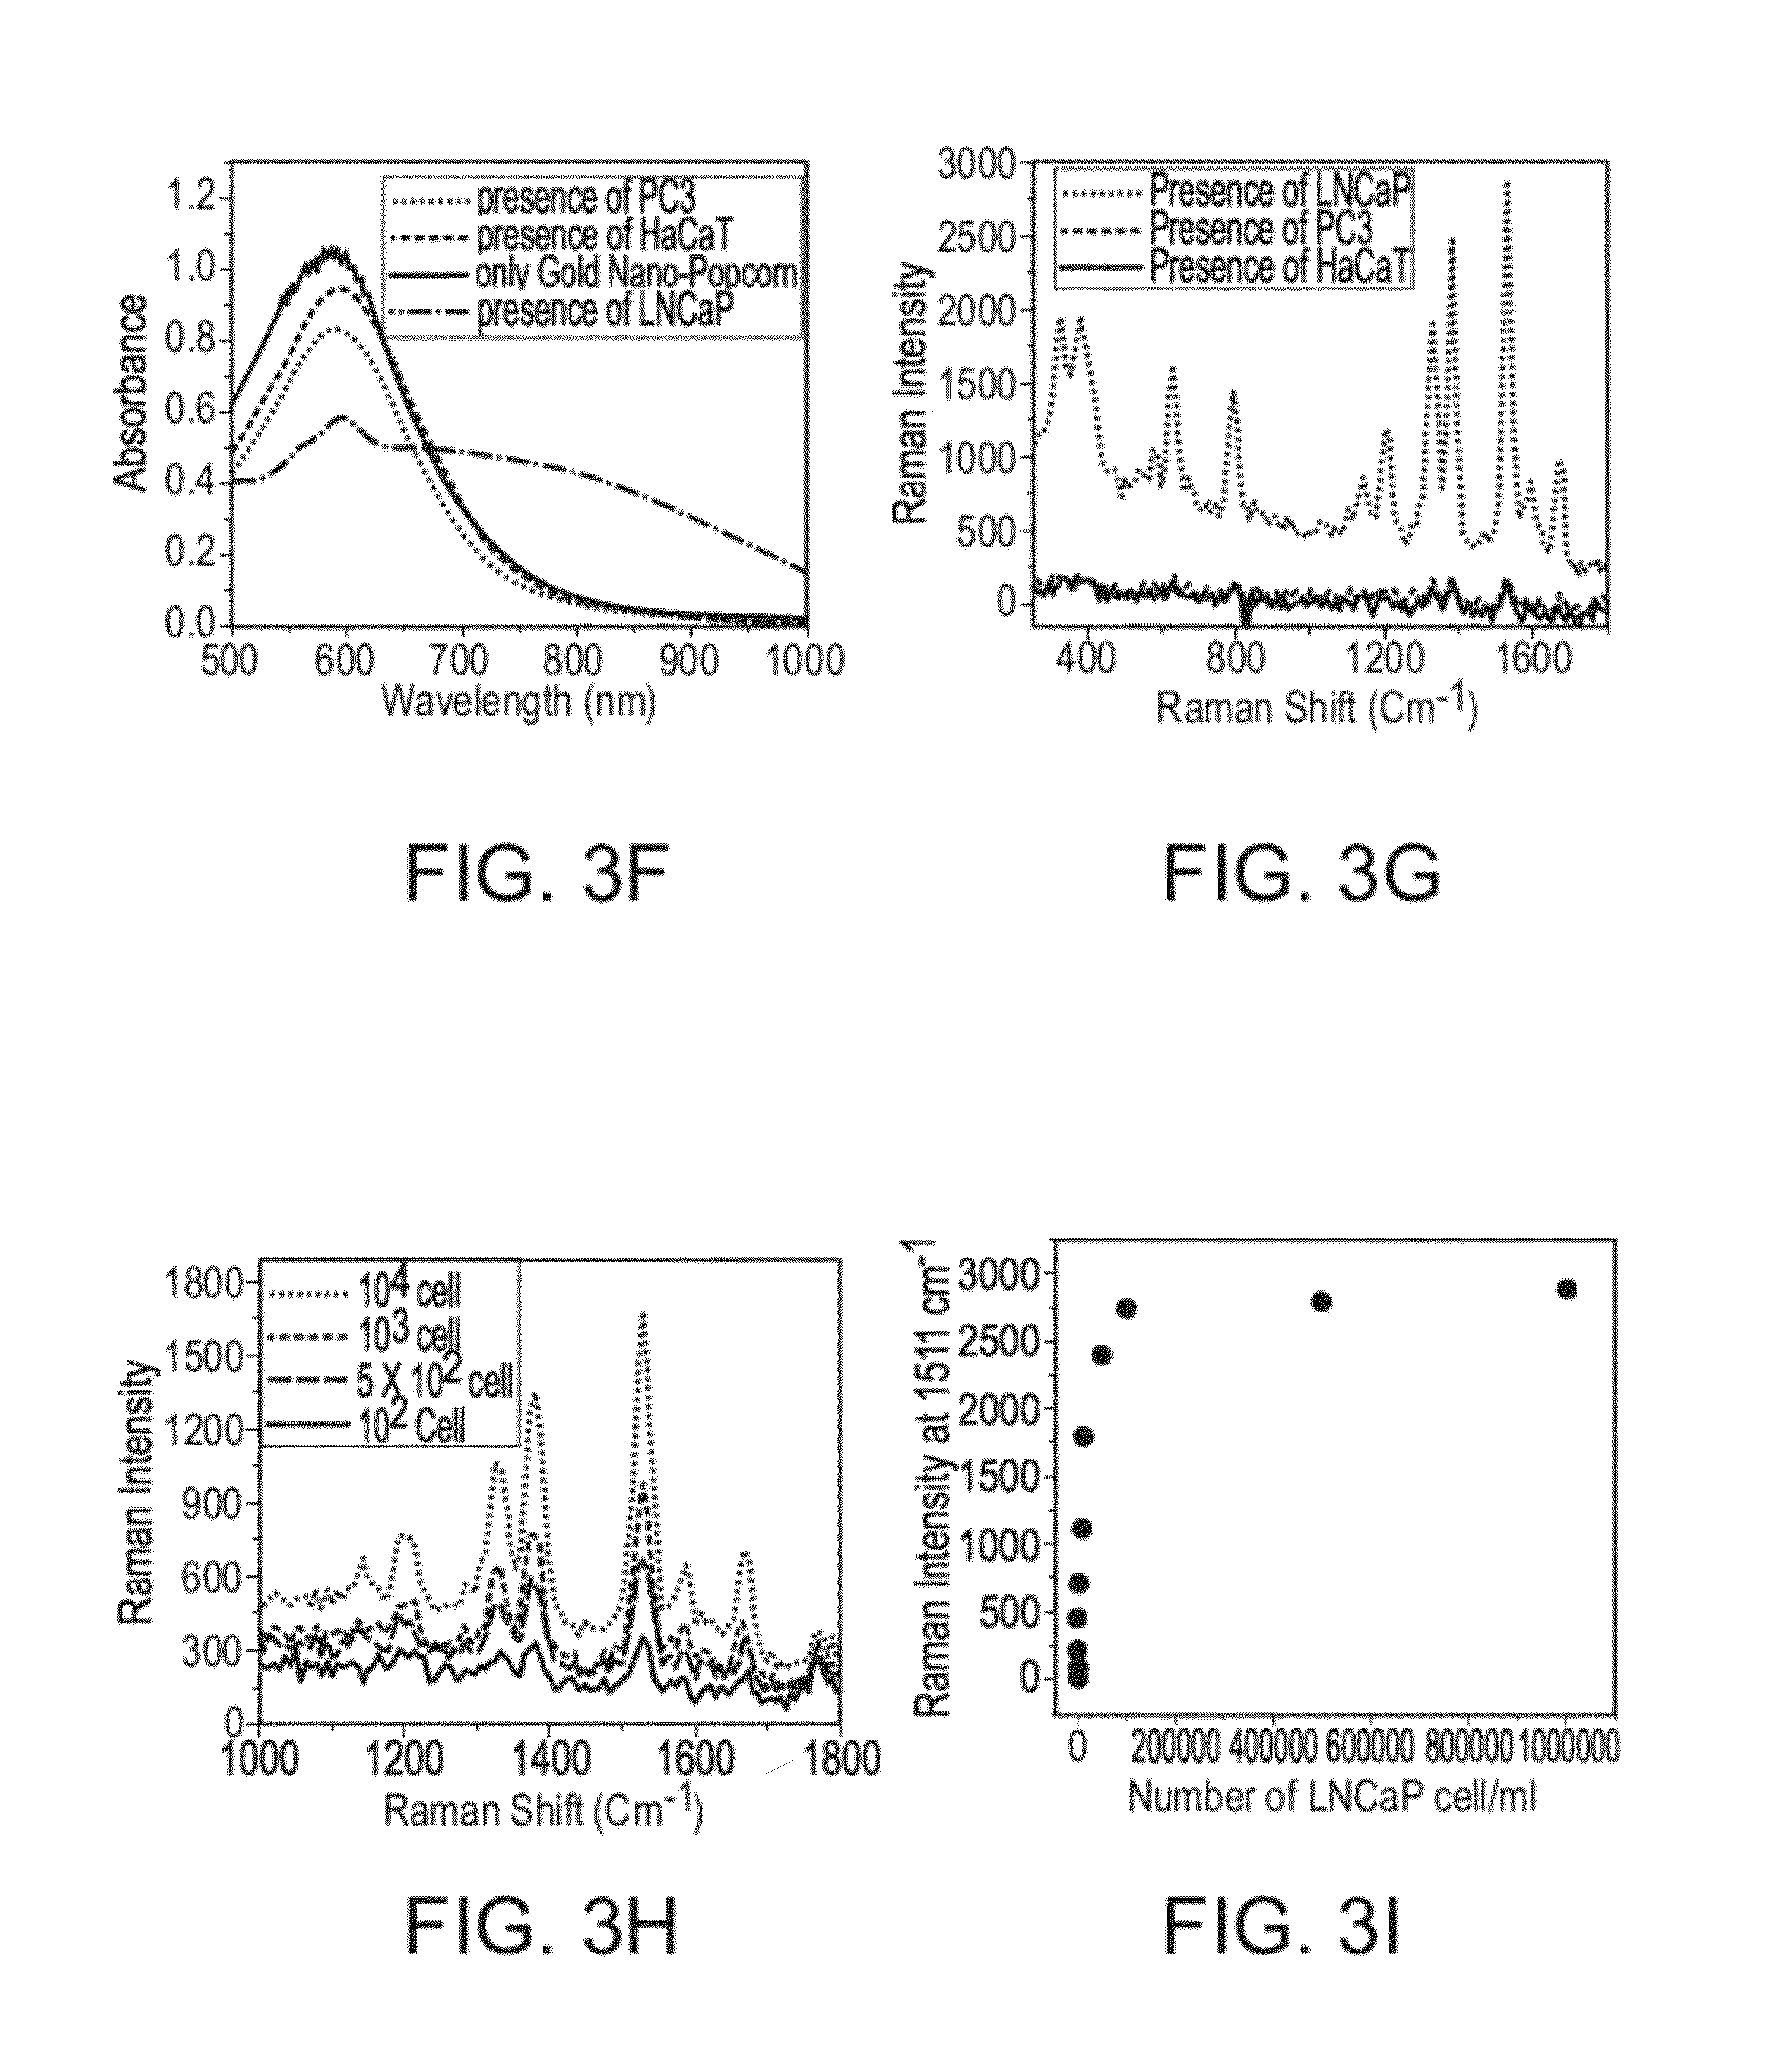 antibody drug gold nanoantennas with raman spectroscopic Hope and innovative cancer diagnostics by raman spectroscopy and raman  antibody- c225 hauns - hollow gold nanoparticles  drugs and photosensitizers in cancer.